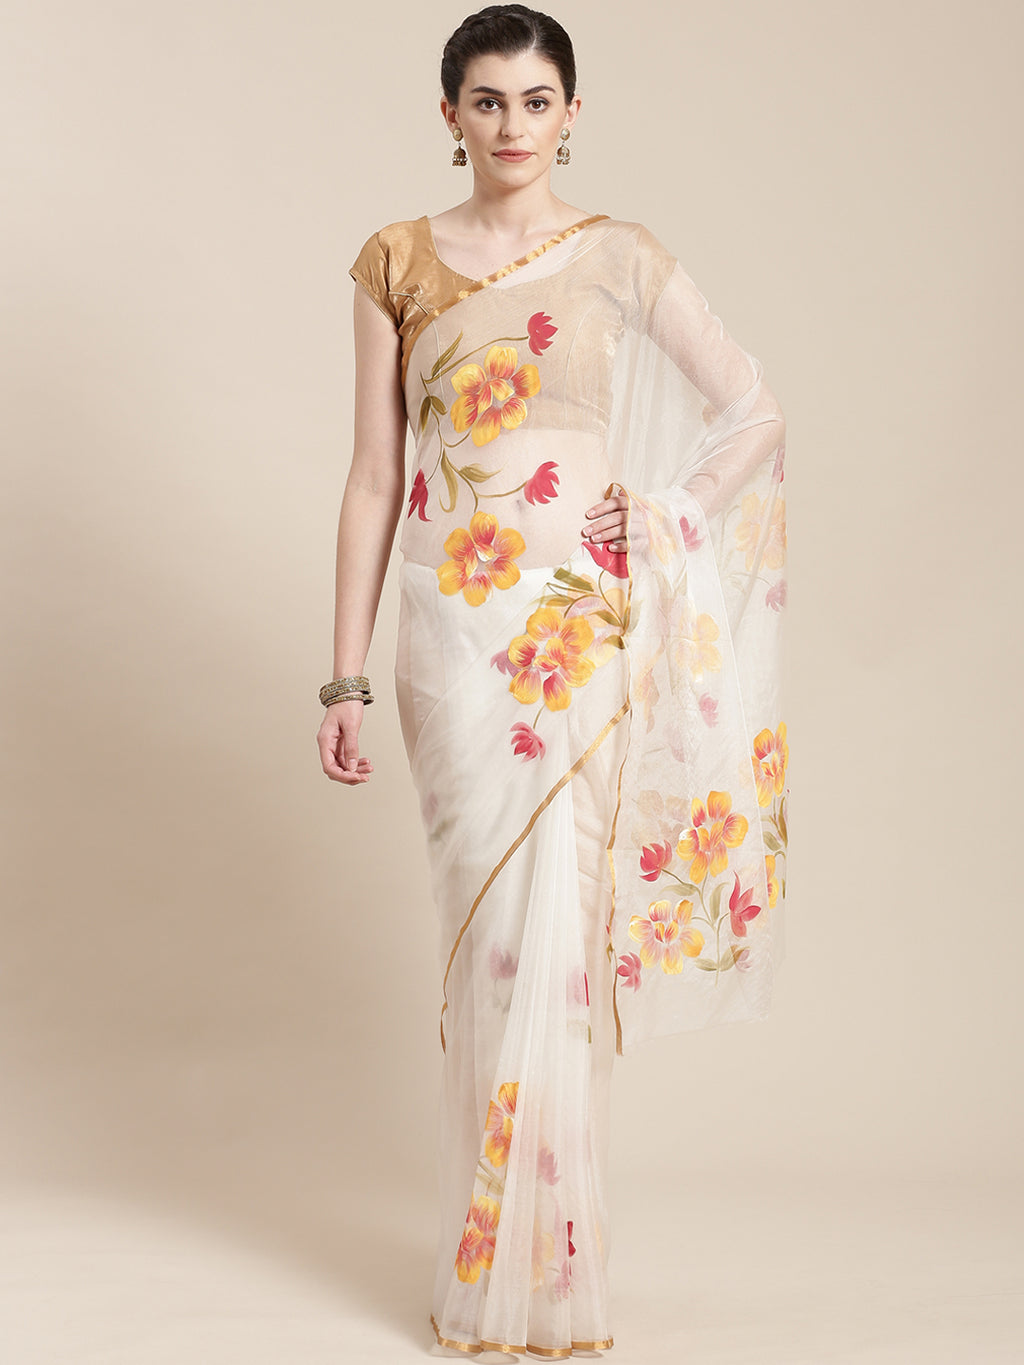 White & Mustard Yellow Floral Hand Painted Organza Saree-Saree-Kalakari India-BHKPSA0121-Hand Painted, Organza, Sarees, Sustainable Fabrics, Traditional Weave-[Linen,Ethnic,wear,Fashionista,Handloom,Handicraft,Indigo,blockprint,block,print,Cotton,Chanderi,Blue, latest,classy,party,bollywood,trendy,summer,style,traditional,formal,elegant,unique,style,hand,block,print, dabu,booti,gift,present,glamorous,affordable,collectible,Sari,Saree,printed, holi, Diwali, birthday, anniversary, sustainable, org